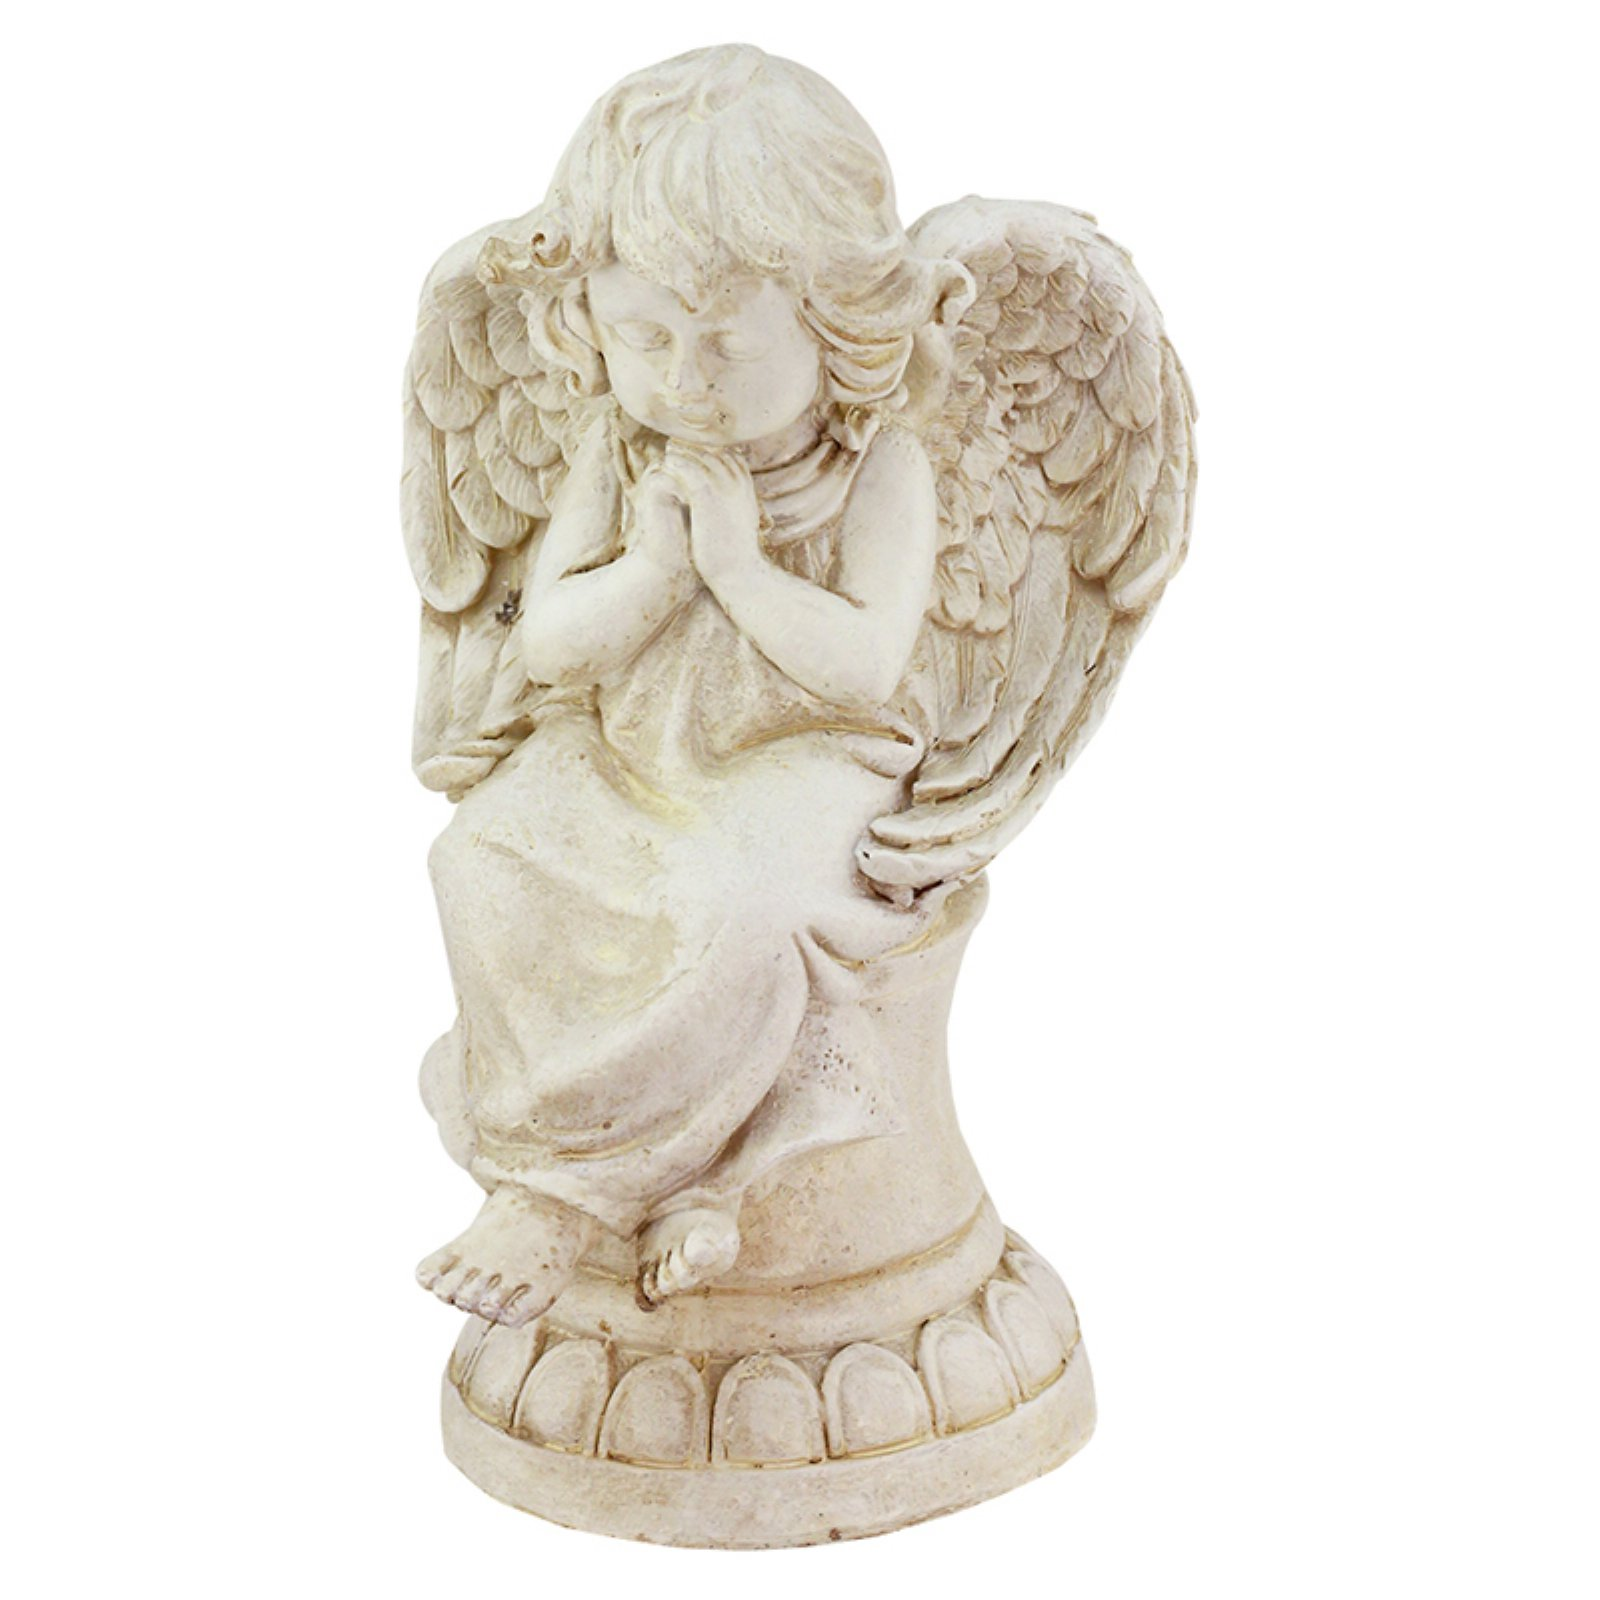 Northlight Heavenly Gardens Cherub Angel on Pedestal Outdoor Garden Statue